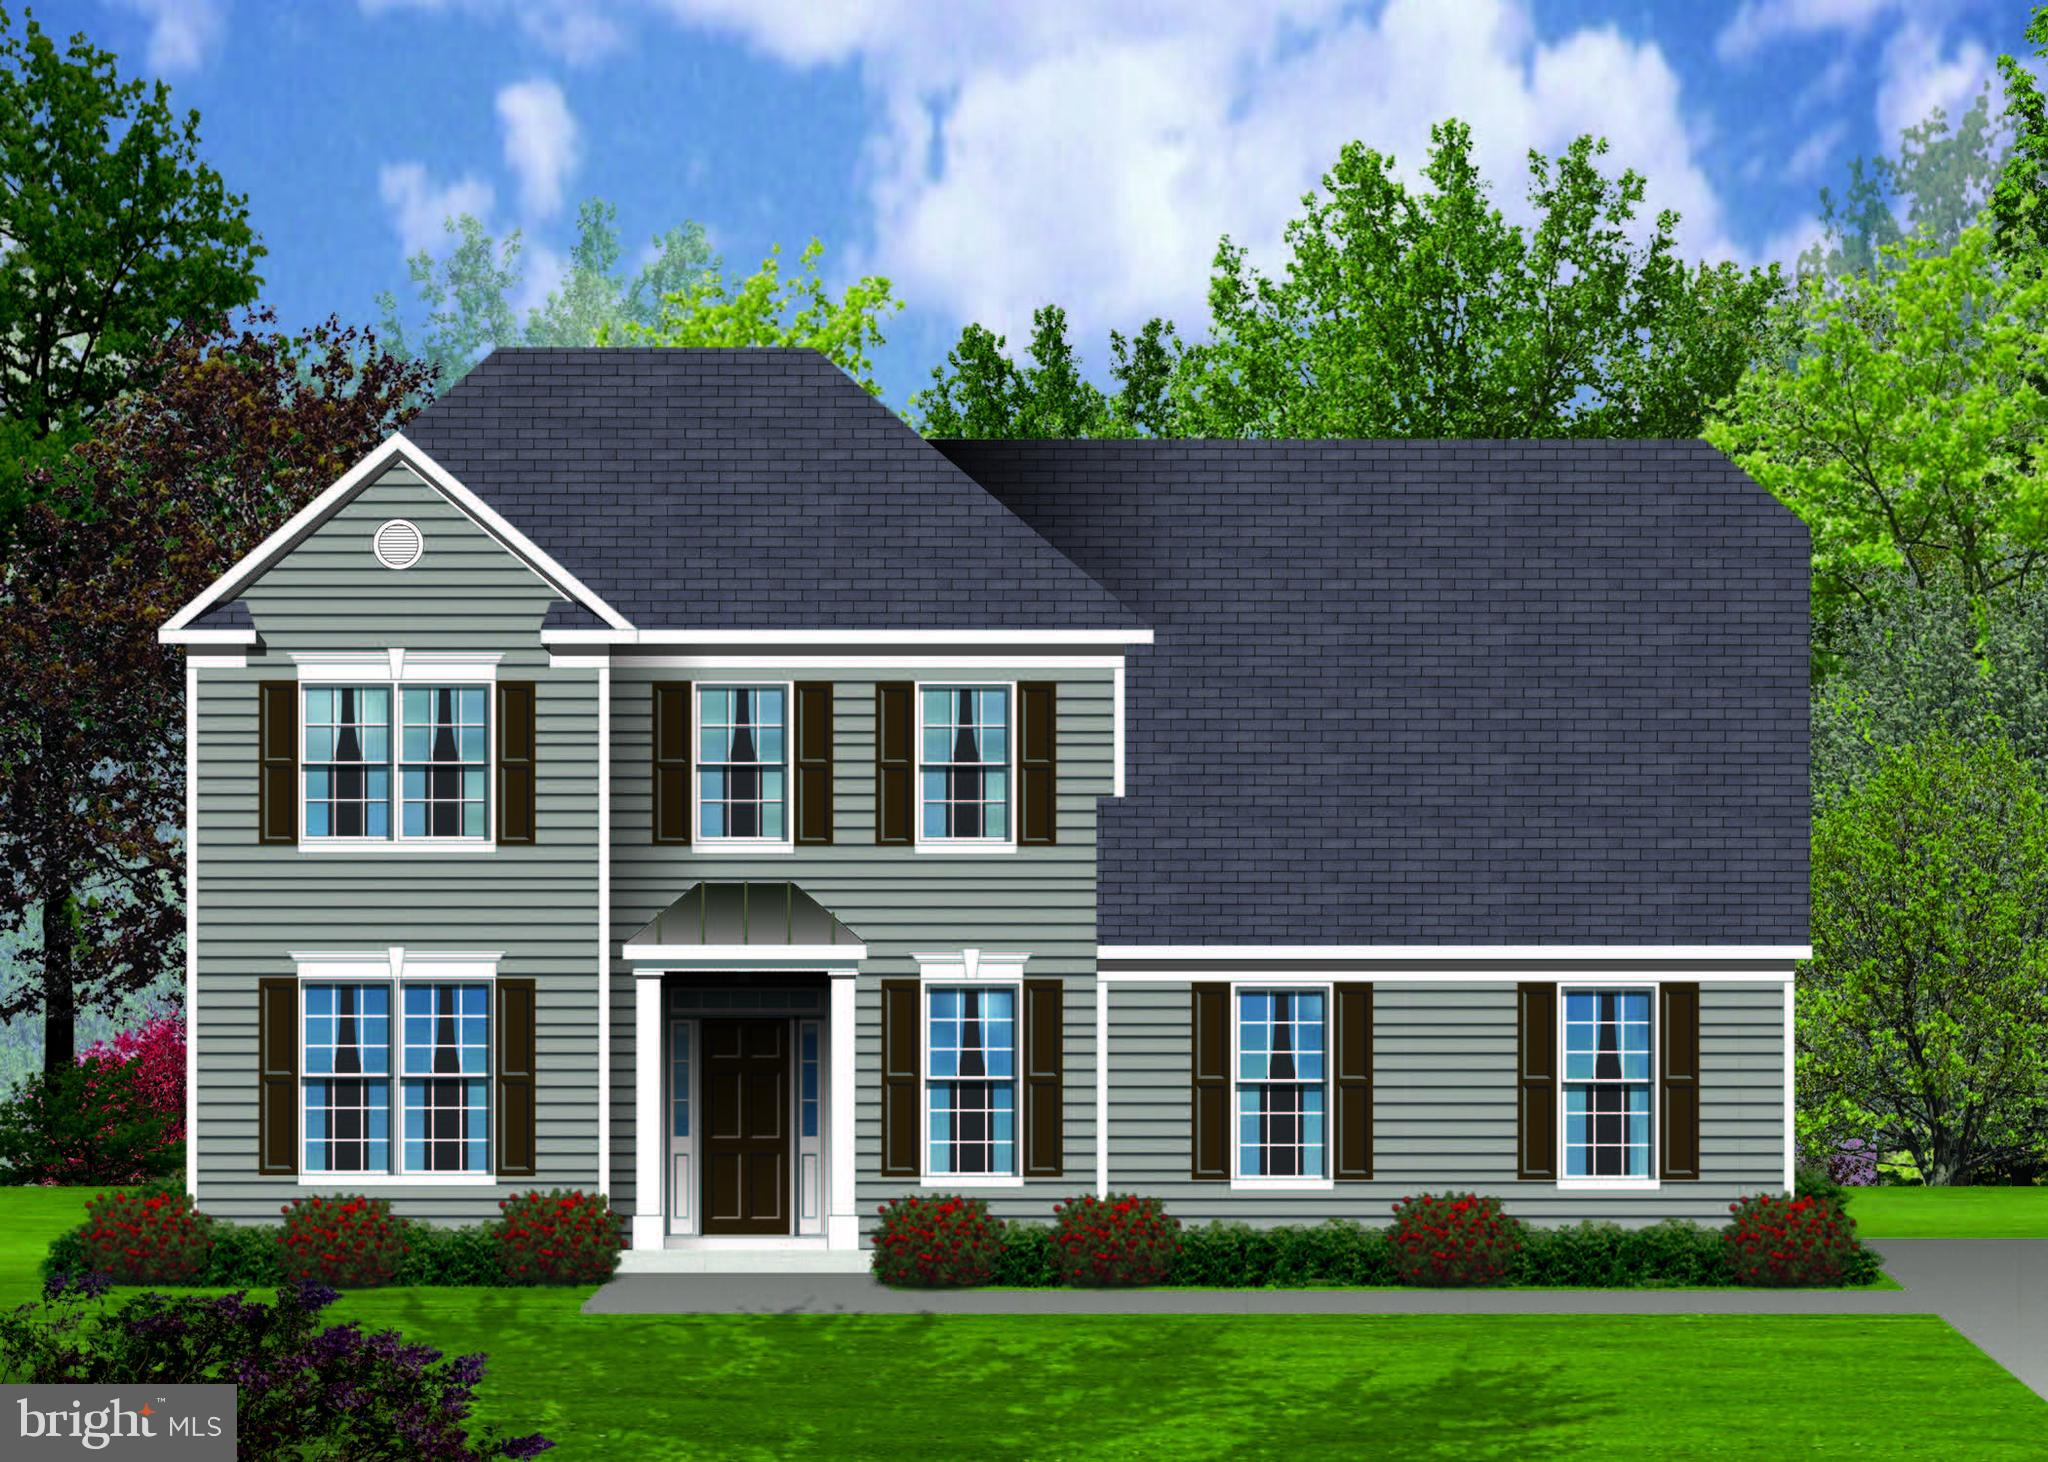 1915 Montevideo Road, Jessup, MD 20794